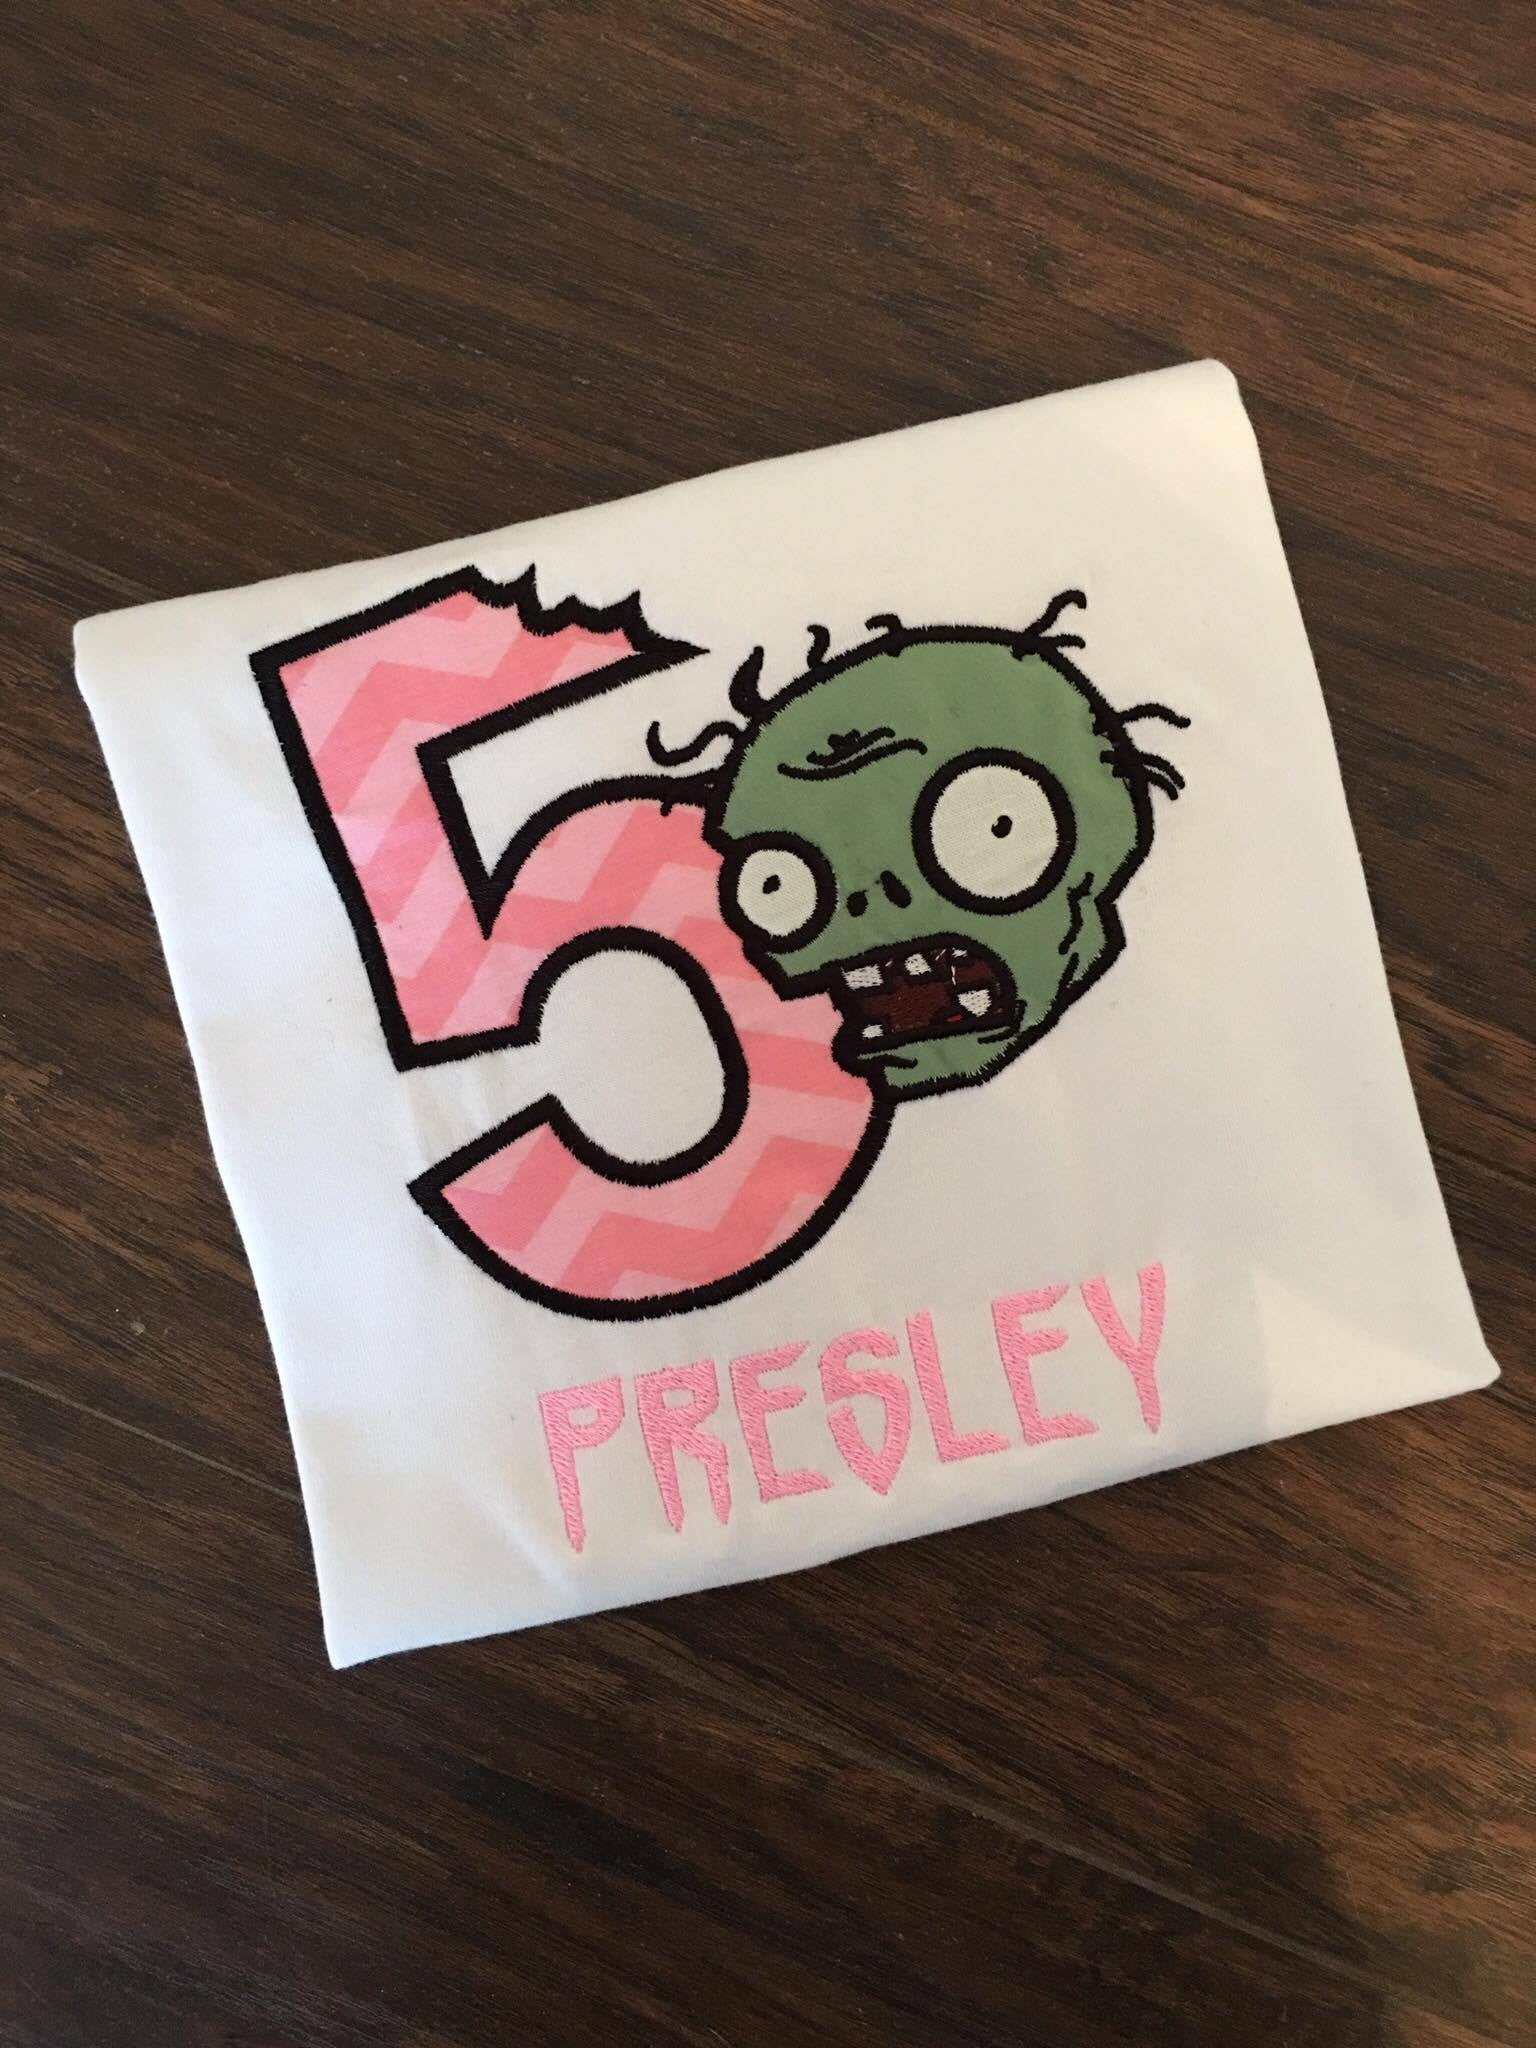 Personalized Plants Vs Zombies Birthday Design - Pink